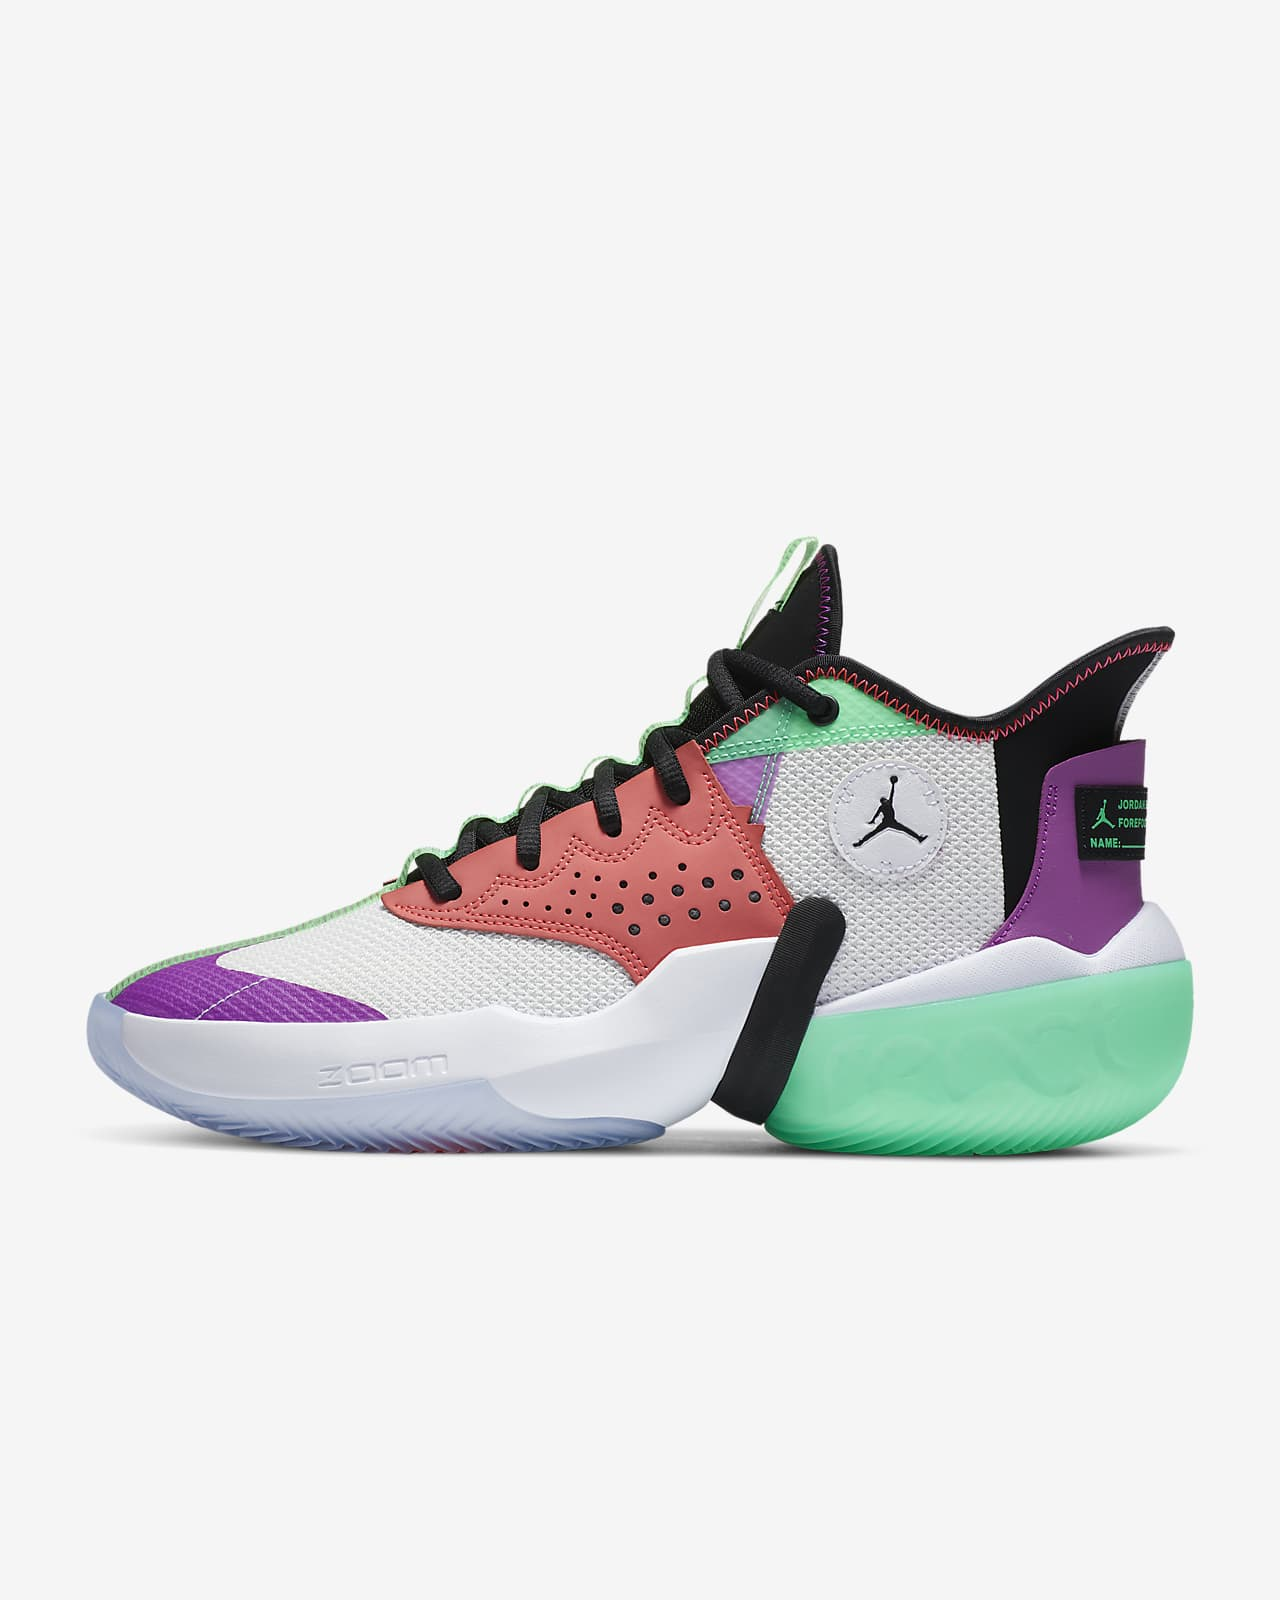 Basketsko Jordan React Elevation för män